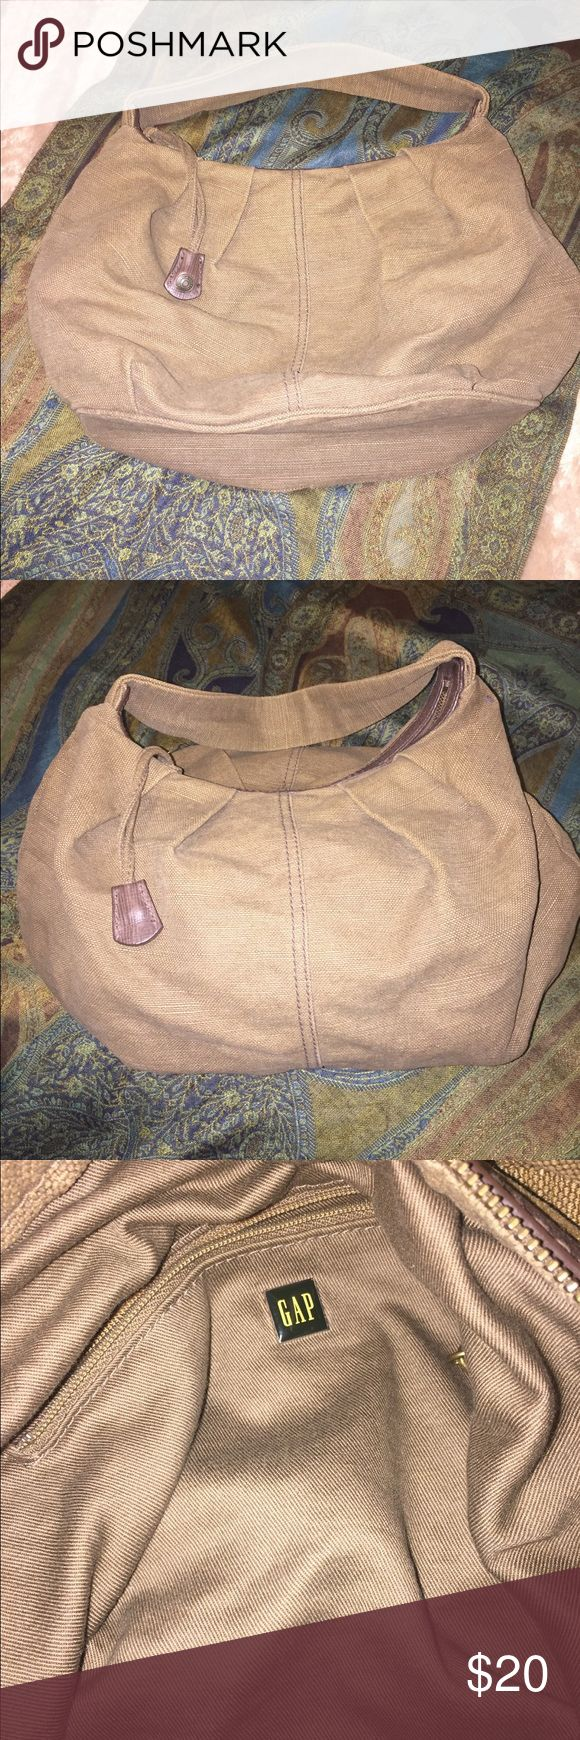 GAP Handbag Stylish tan hobo style slouch bag with zipper top; strap long enough to wear on shoulder but short enough to hang on wrist or carry by hand; clean inside...barely used GAP Bags Hobos